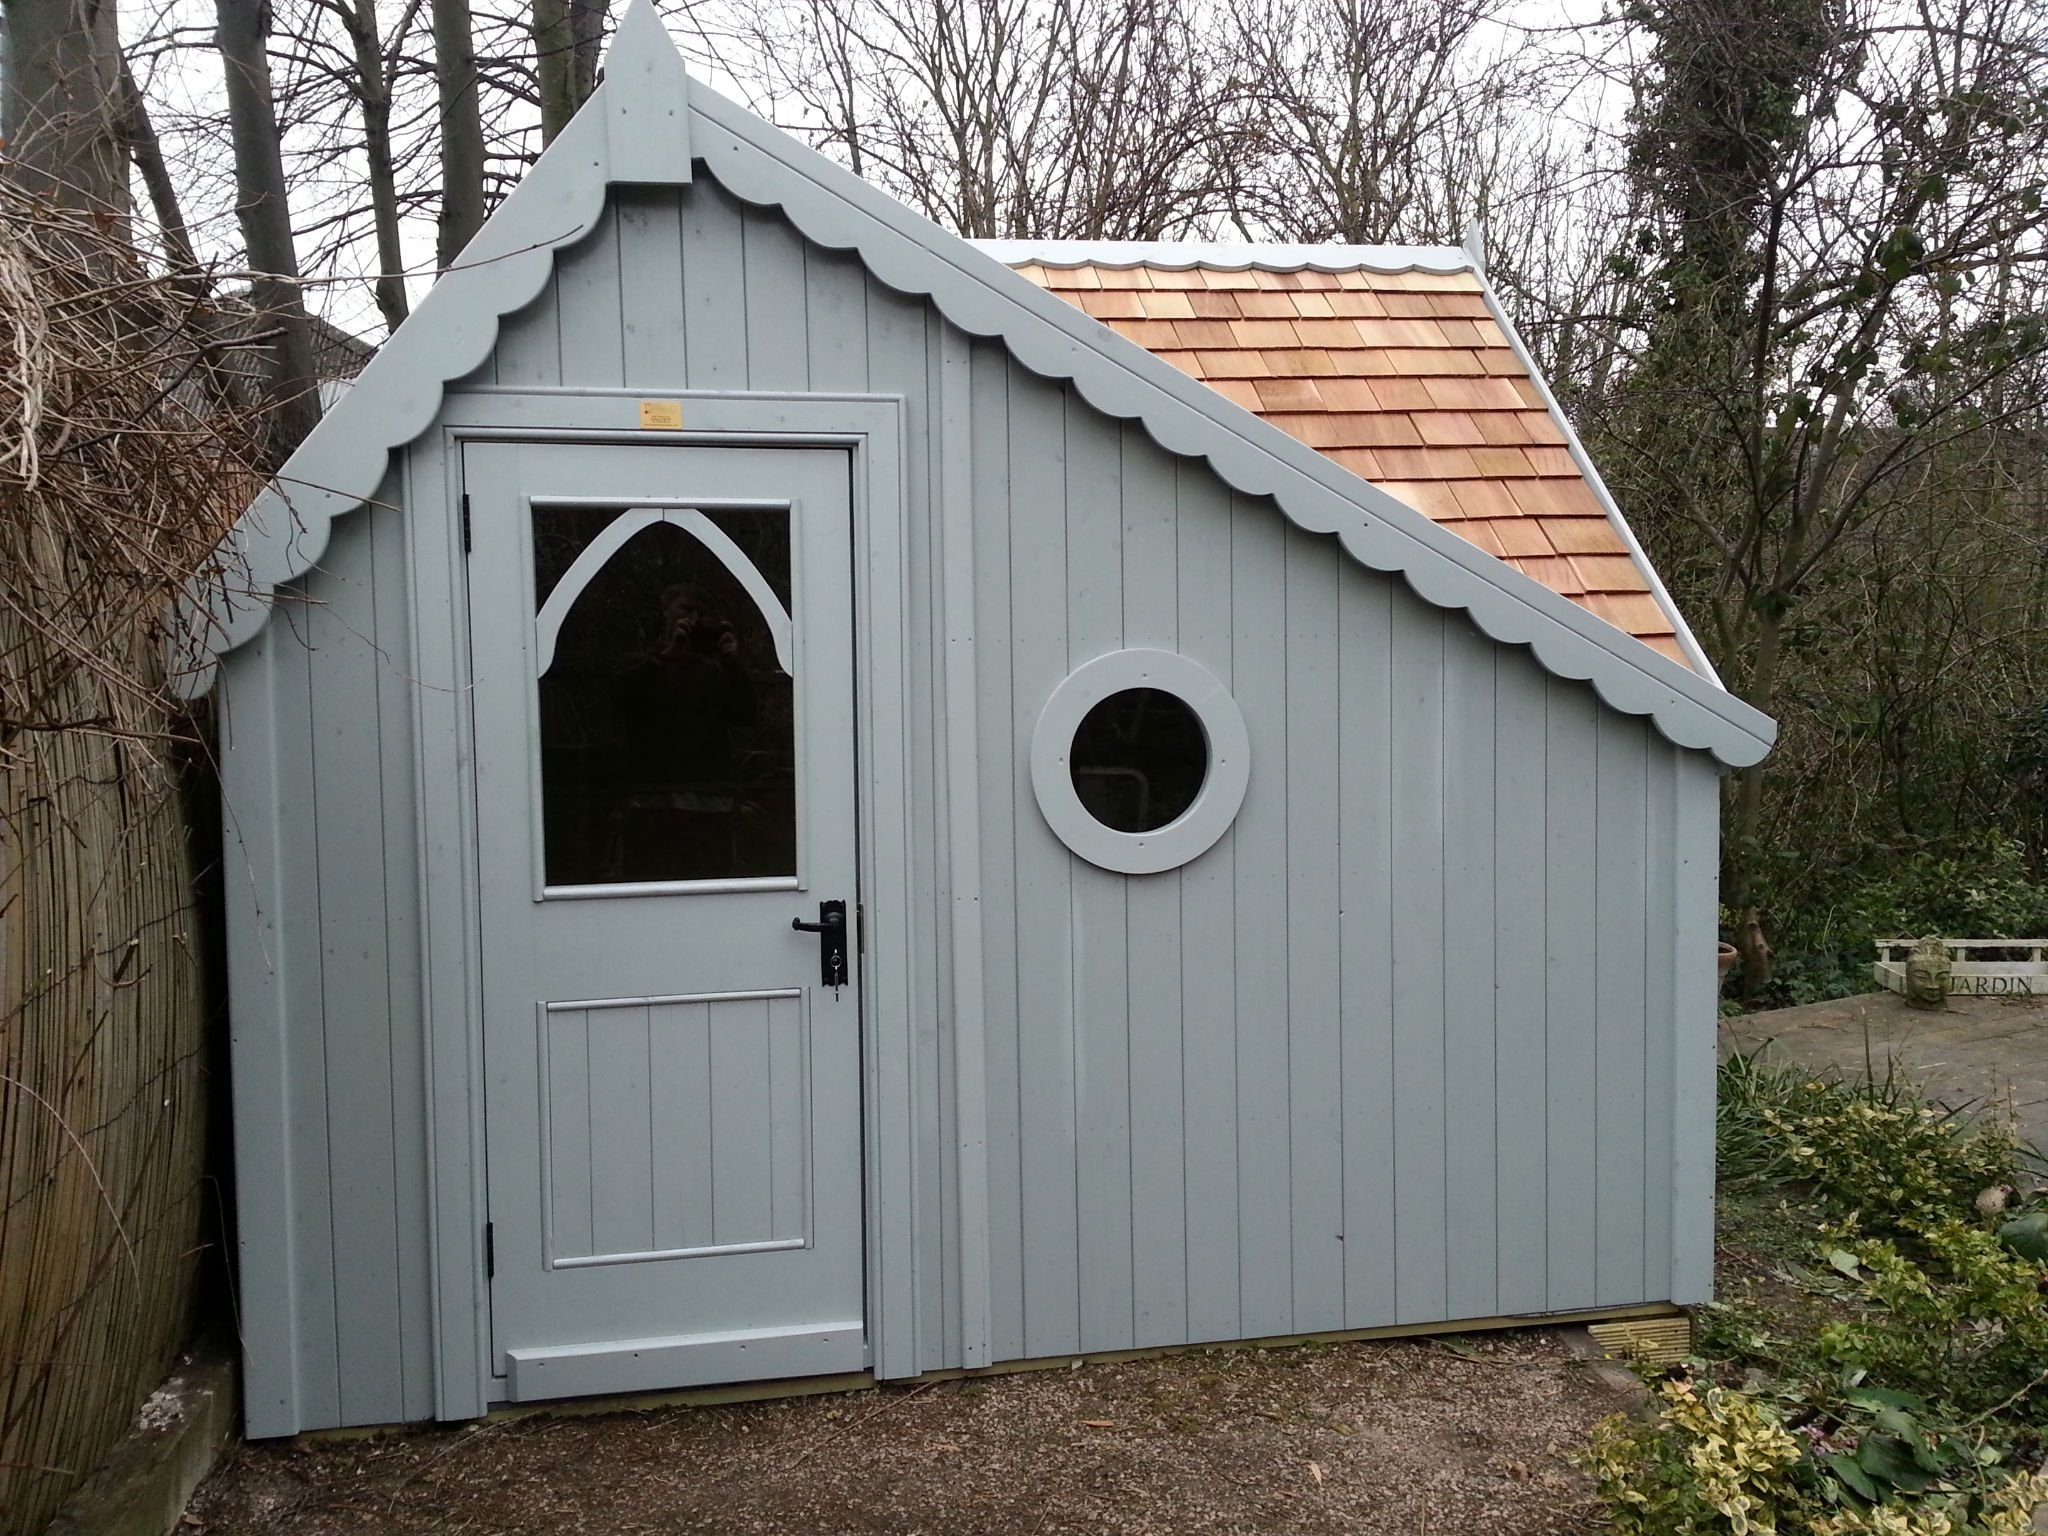 Garden Sheds Installed a super bespoke gothic shed, installed this week. cedar roof and